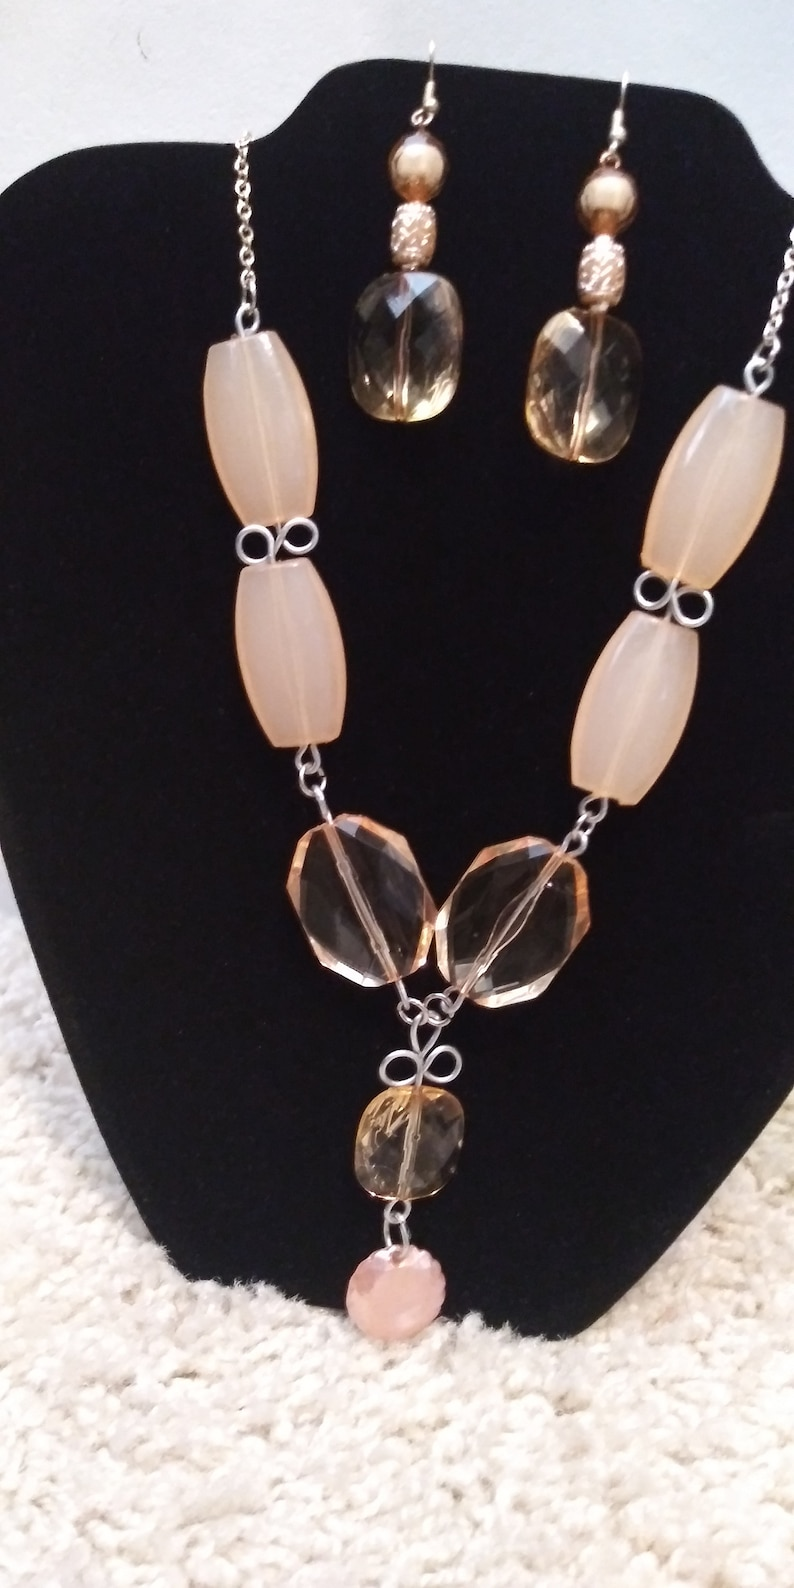 Necklace set Large Peach Beaded Cascading Necklace and Earring Set Clear Peach Beads